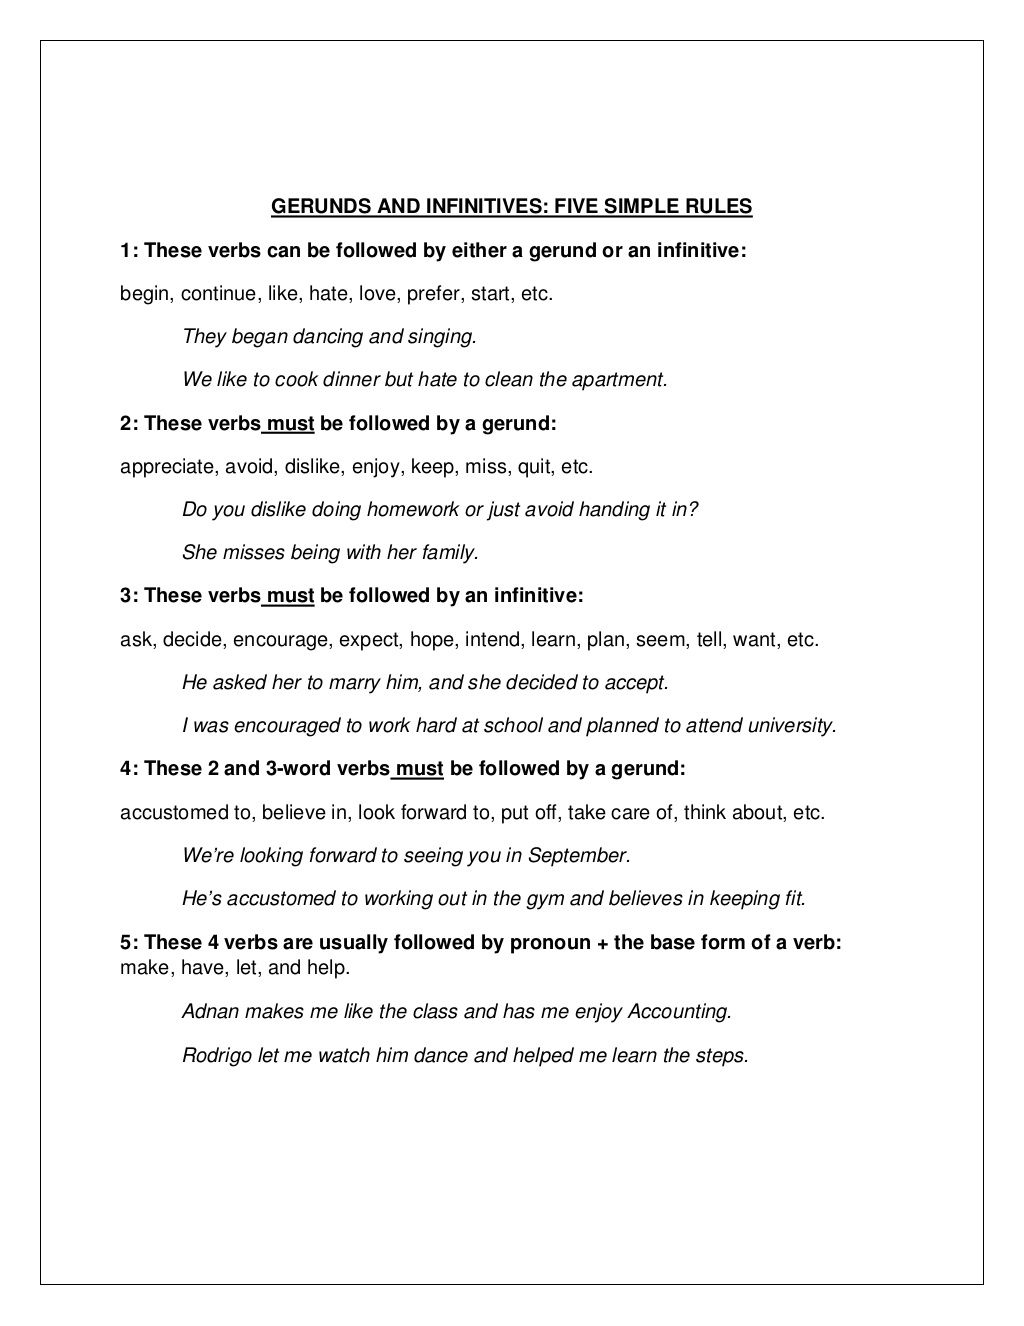 hight resolution of Gerunds vs Infinitives - 5 rules   Writing classes